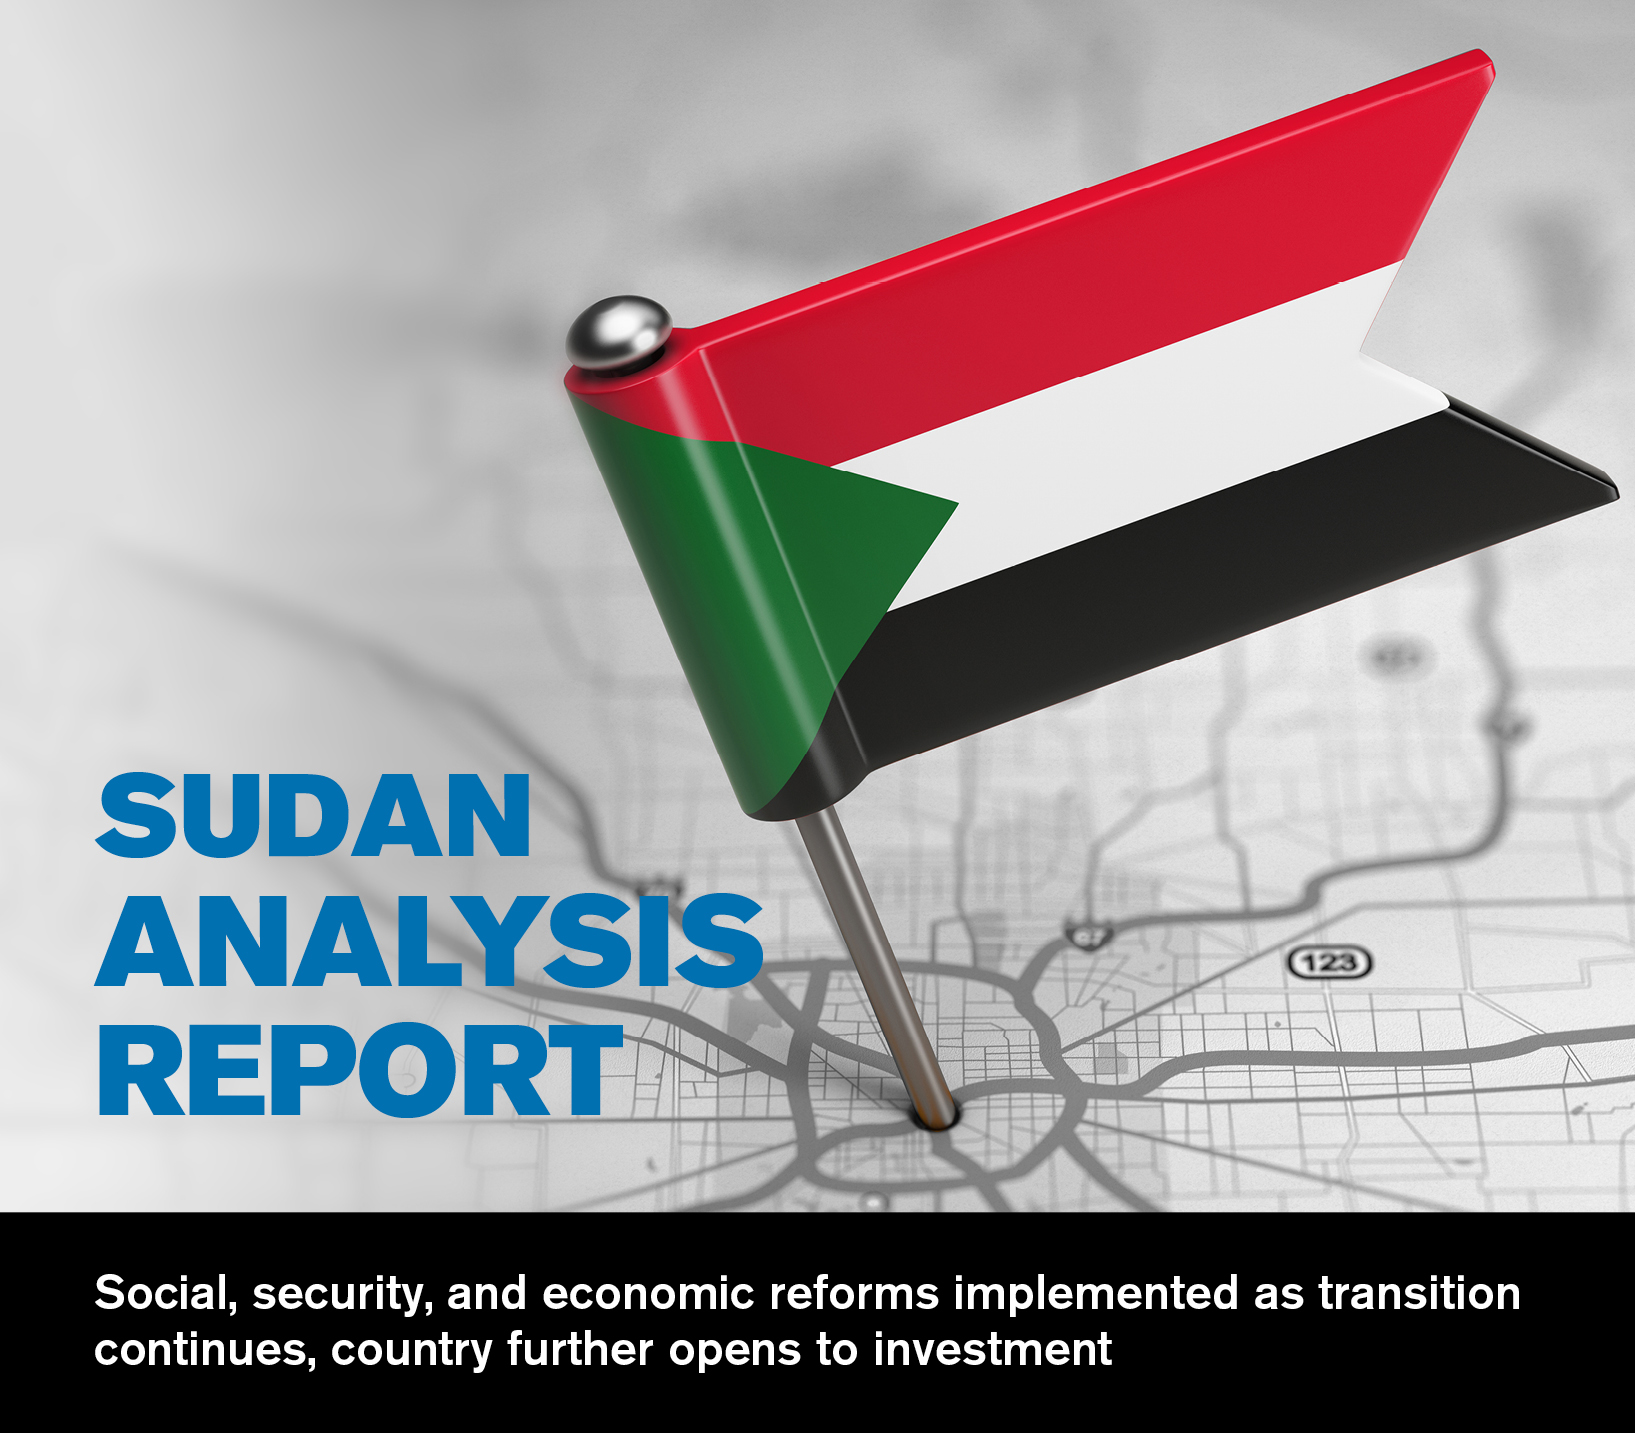 Social, security, and economic reforms implemented as transition continues, country further opens to investment - Sudan Analysis